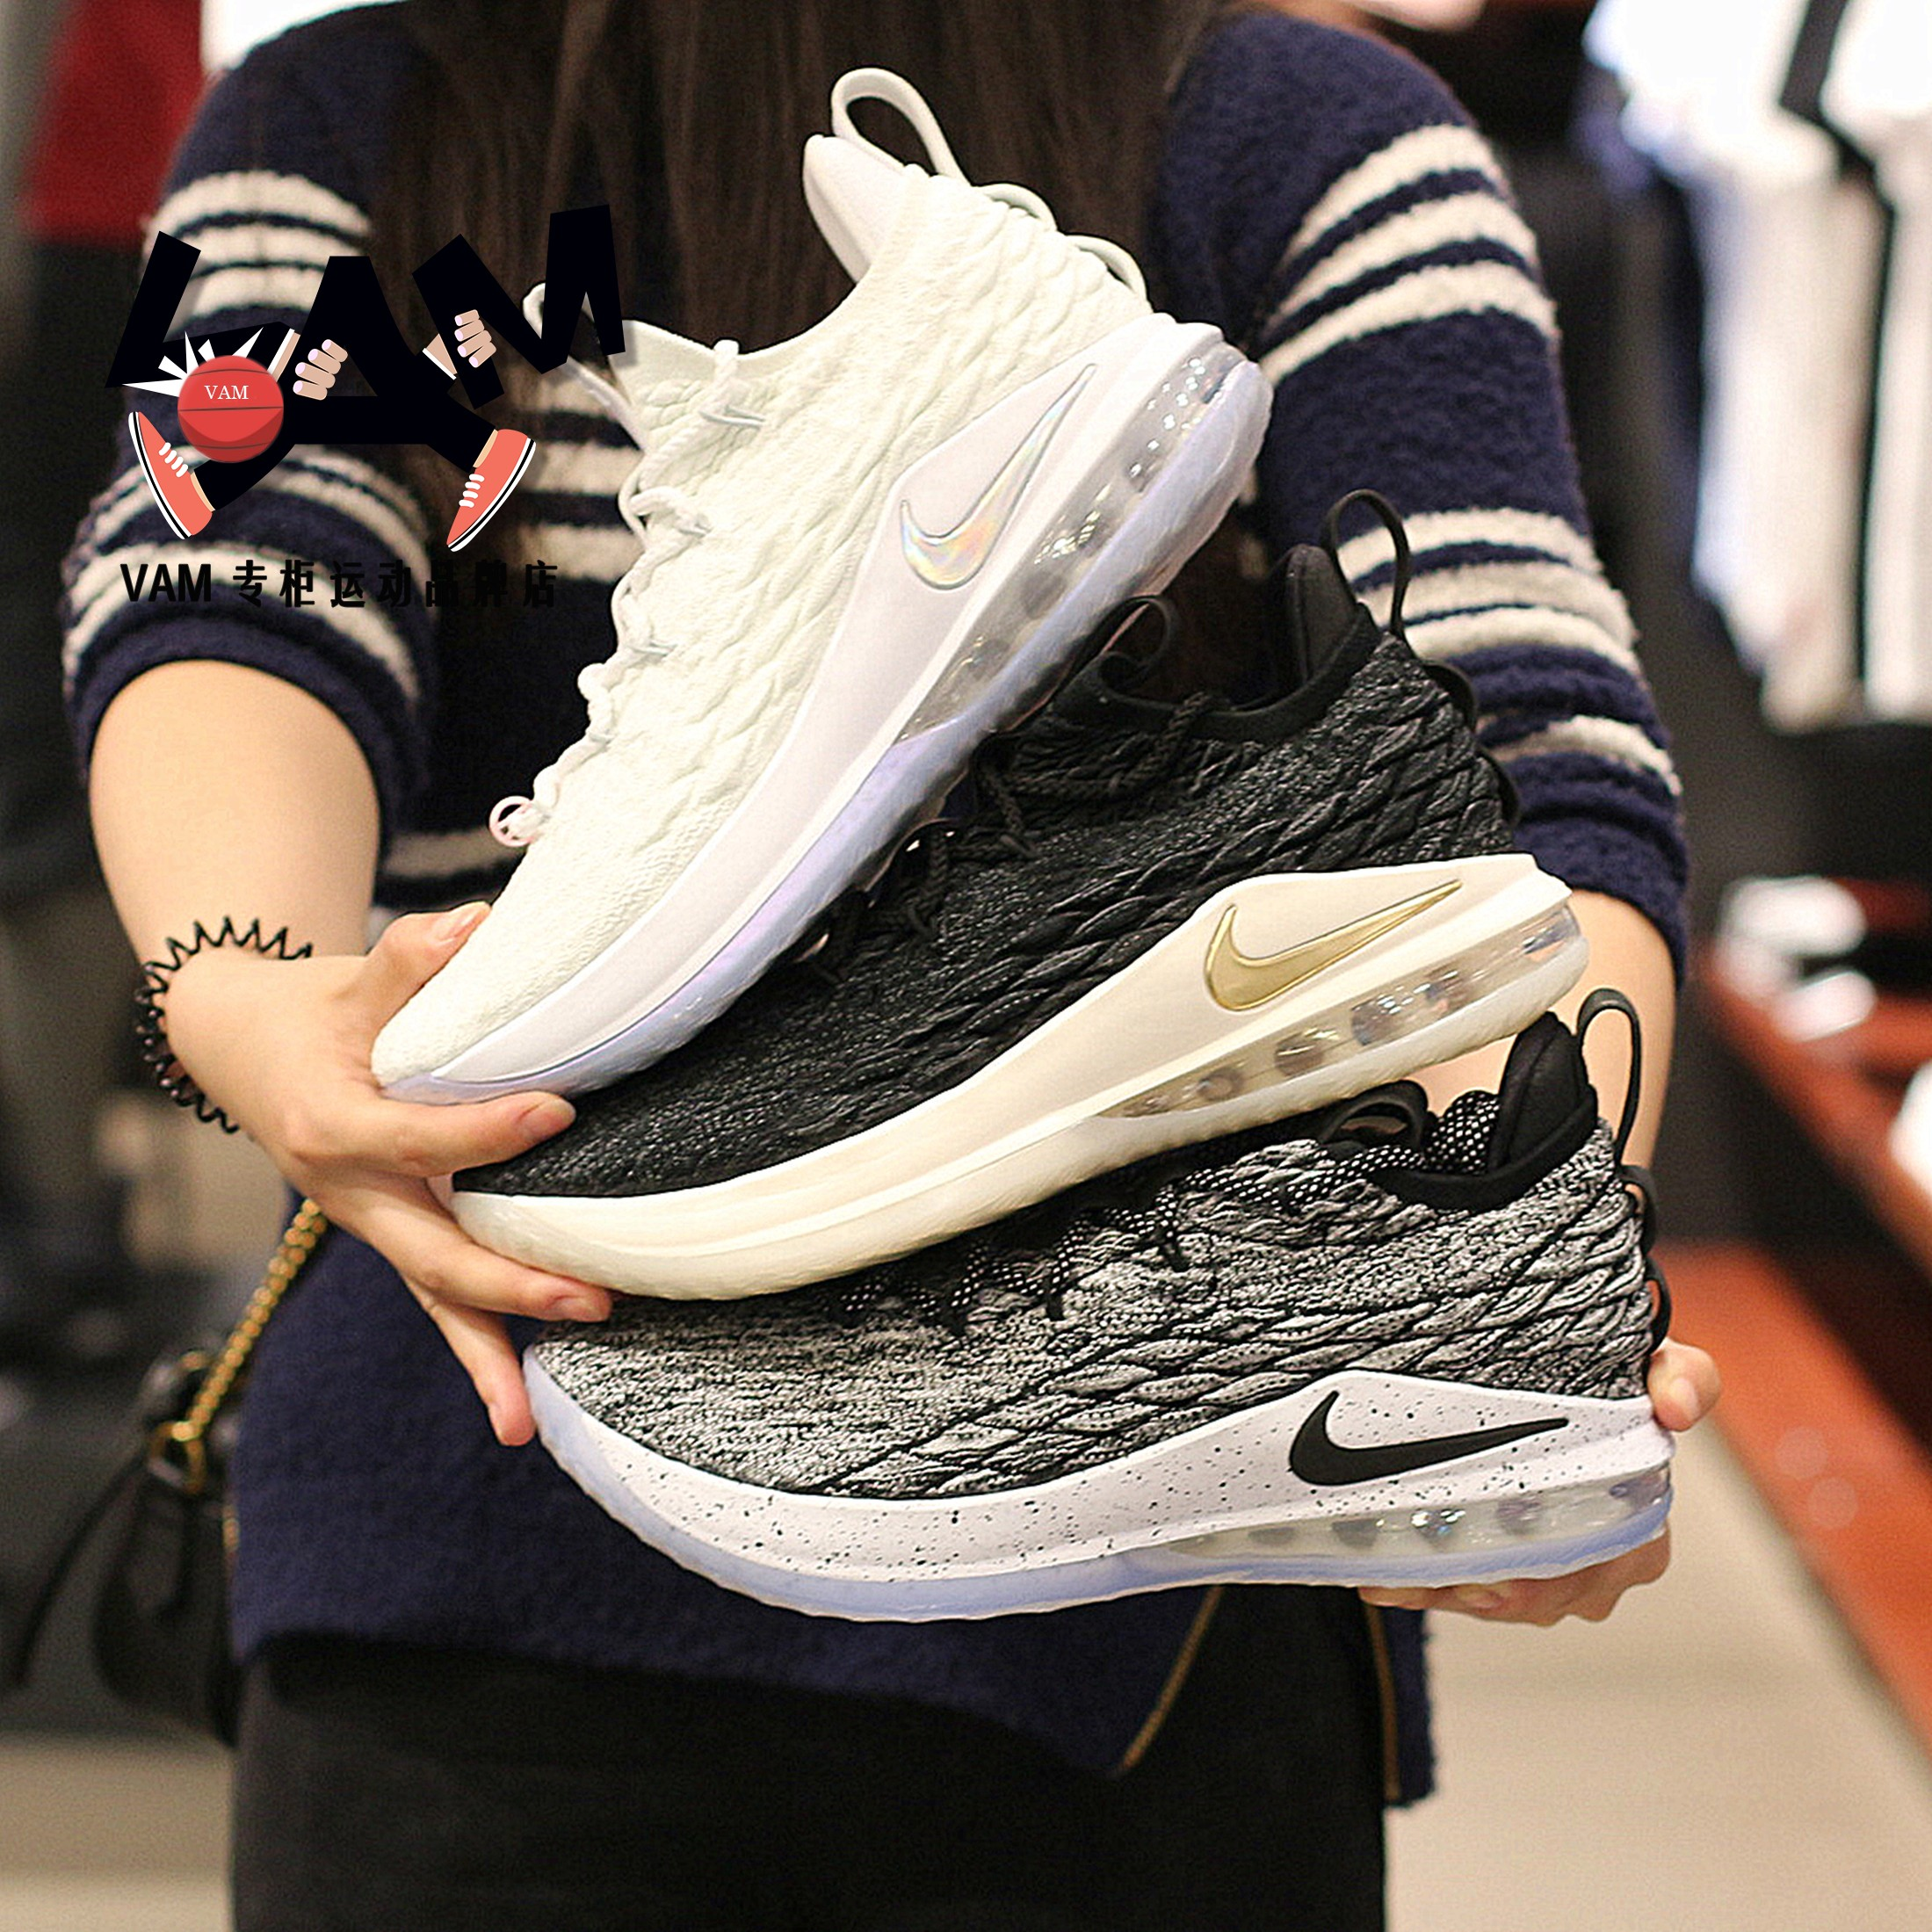 Nike LeBron15 Low LBJ 詹姆斯15篮球鞋 AO1756-100-003-002-001